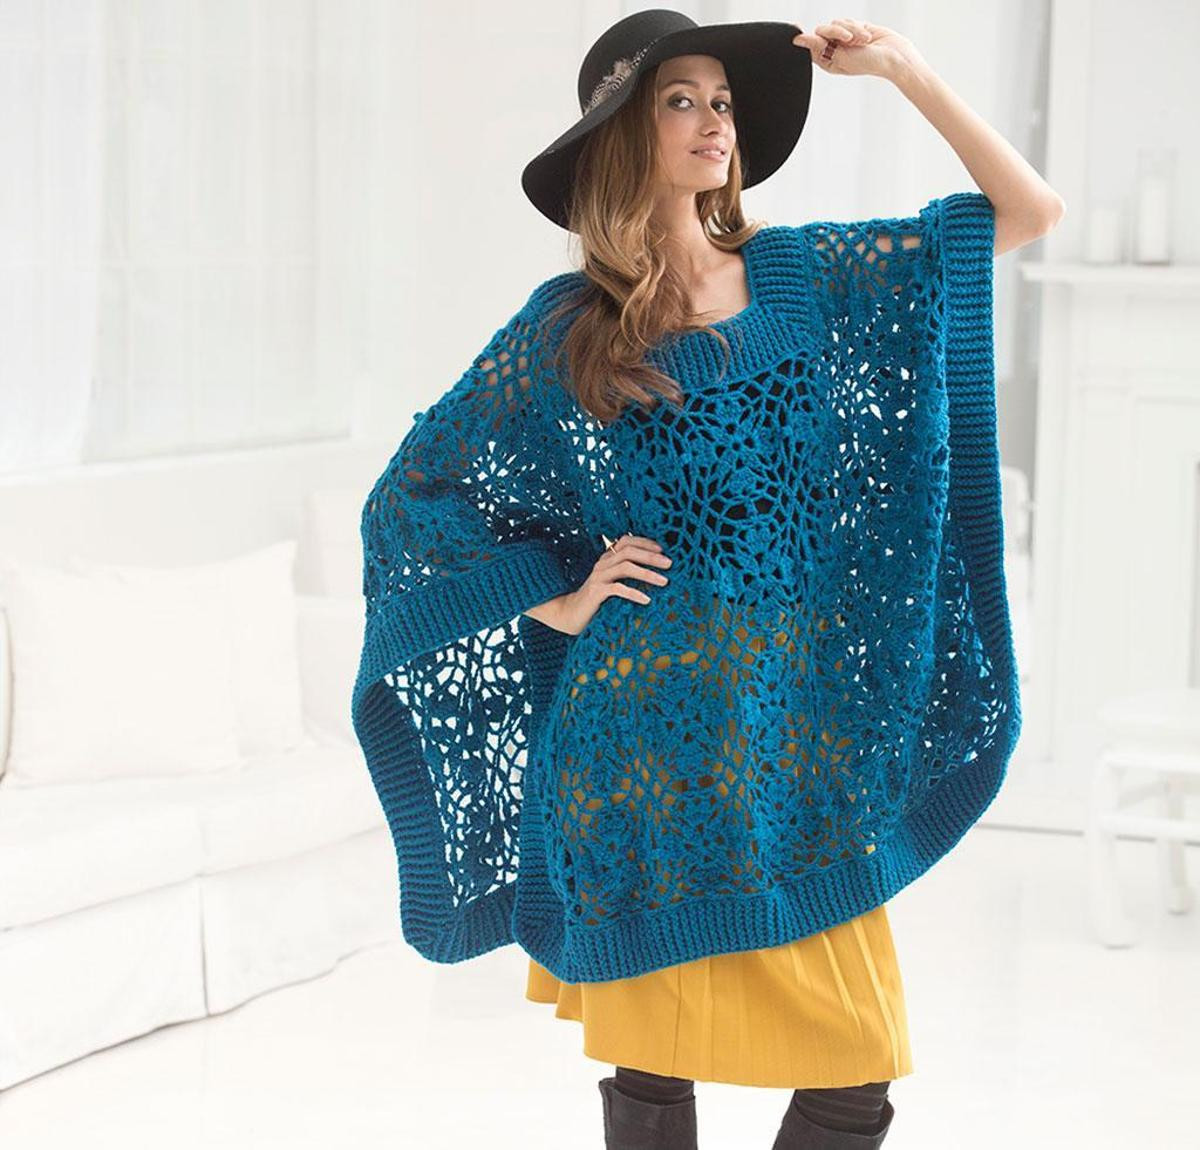 Lacy Poncho by Lion Brand Crochet Sweater Kit featuring